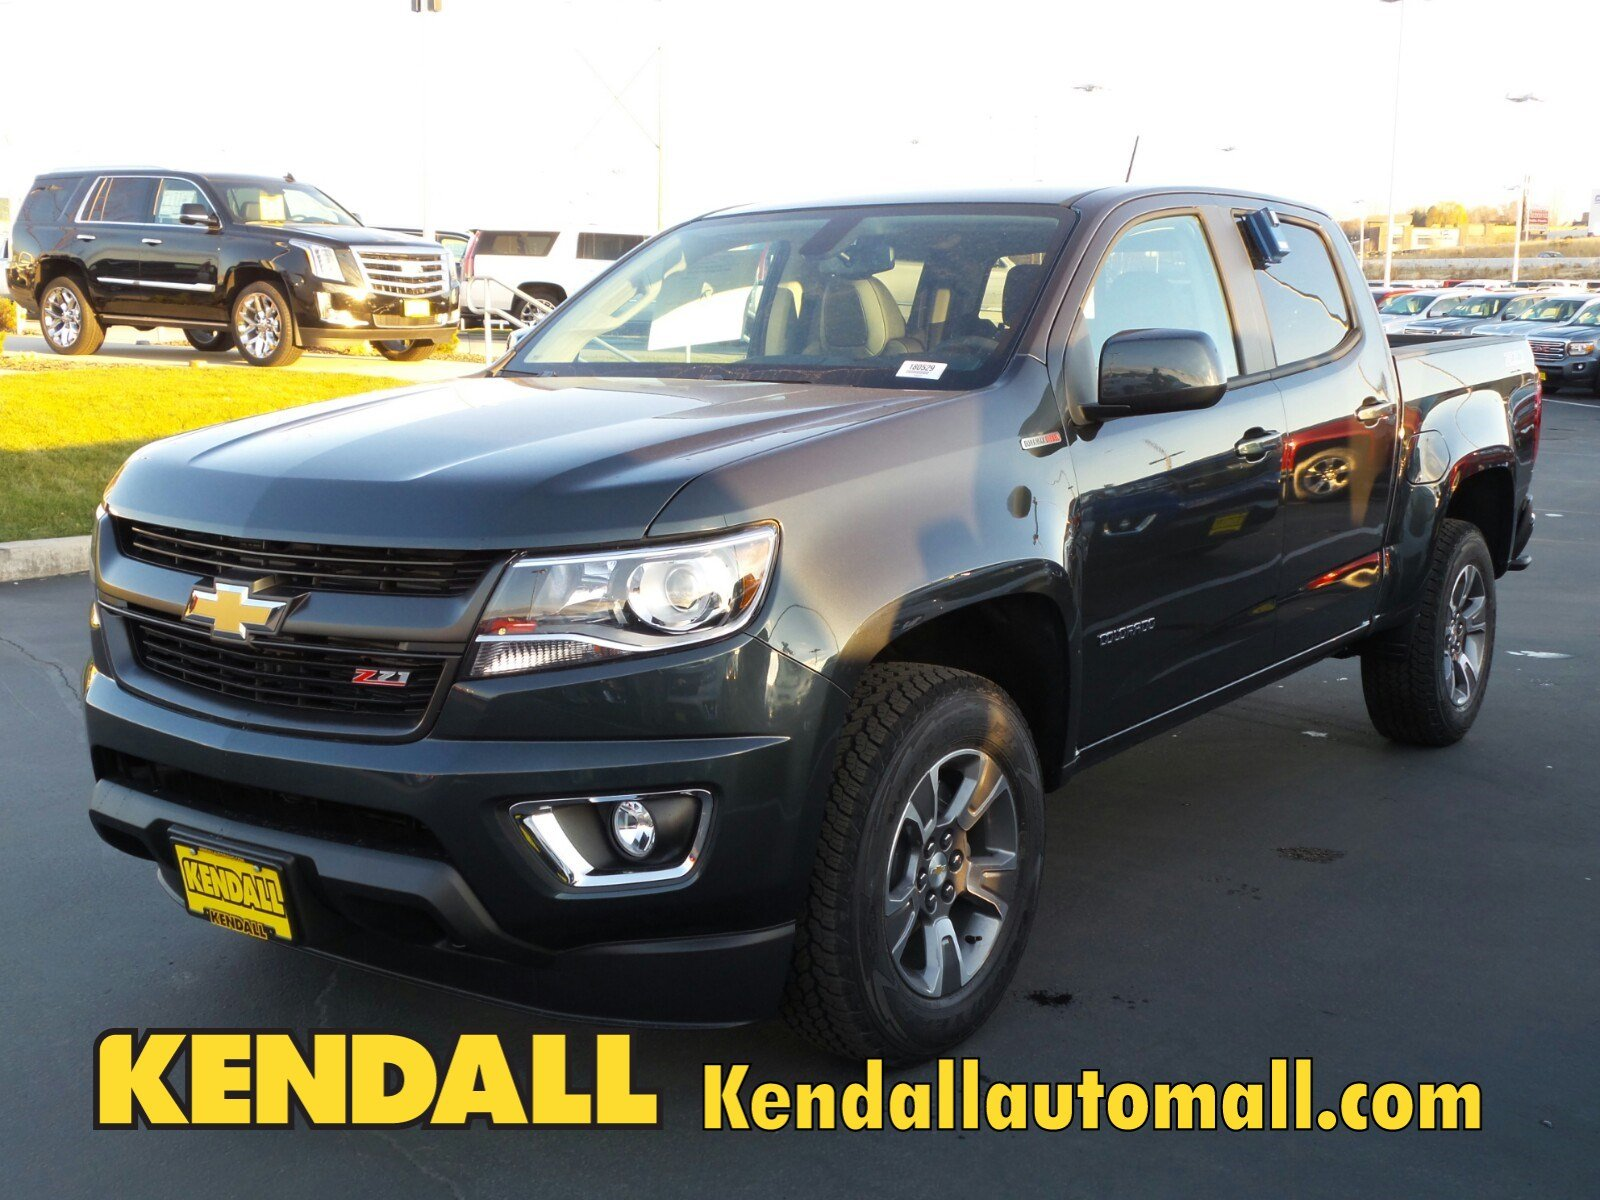 new 2018 chevrolet colorado 4wd z71 in nampa 180529 kendall at the idaho center auto mall. Black Bedroom Furniture Sets. Home Design Ideas